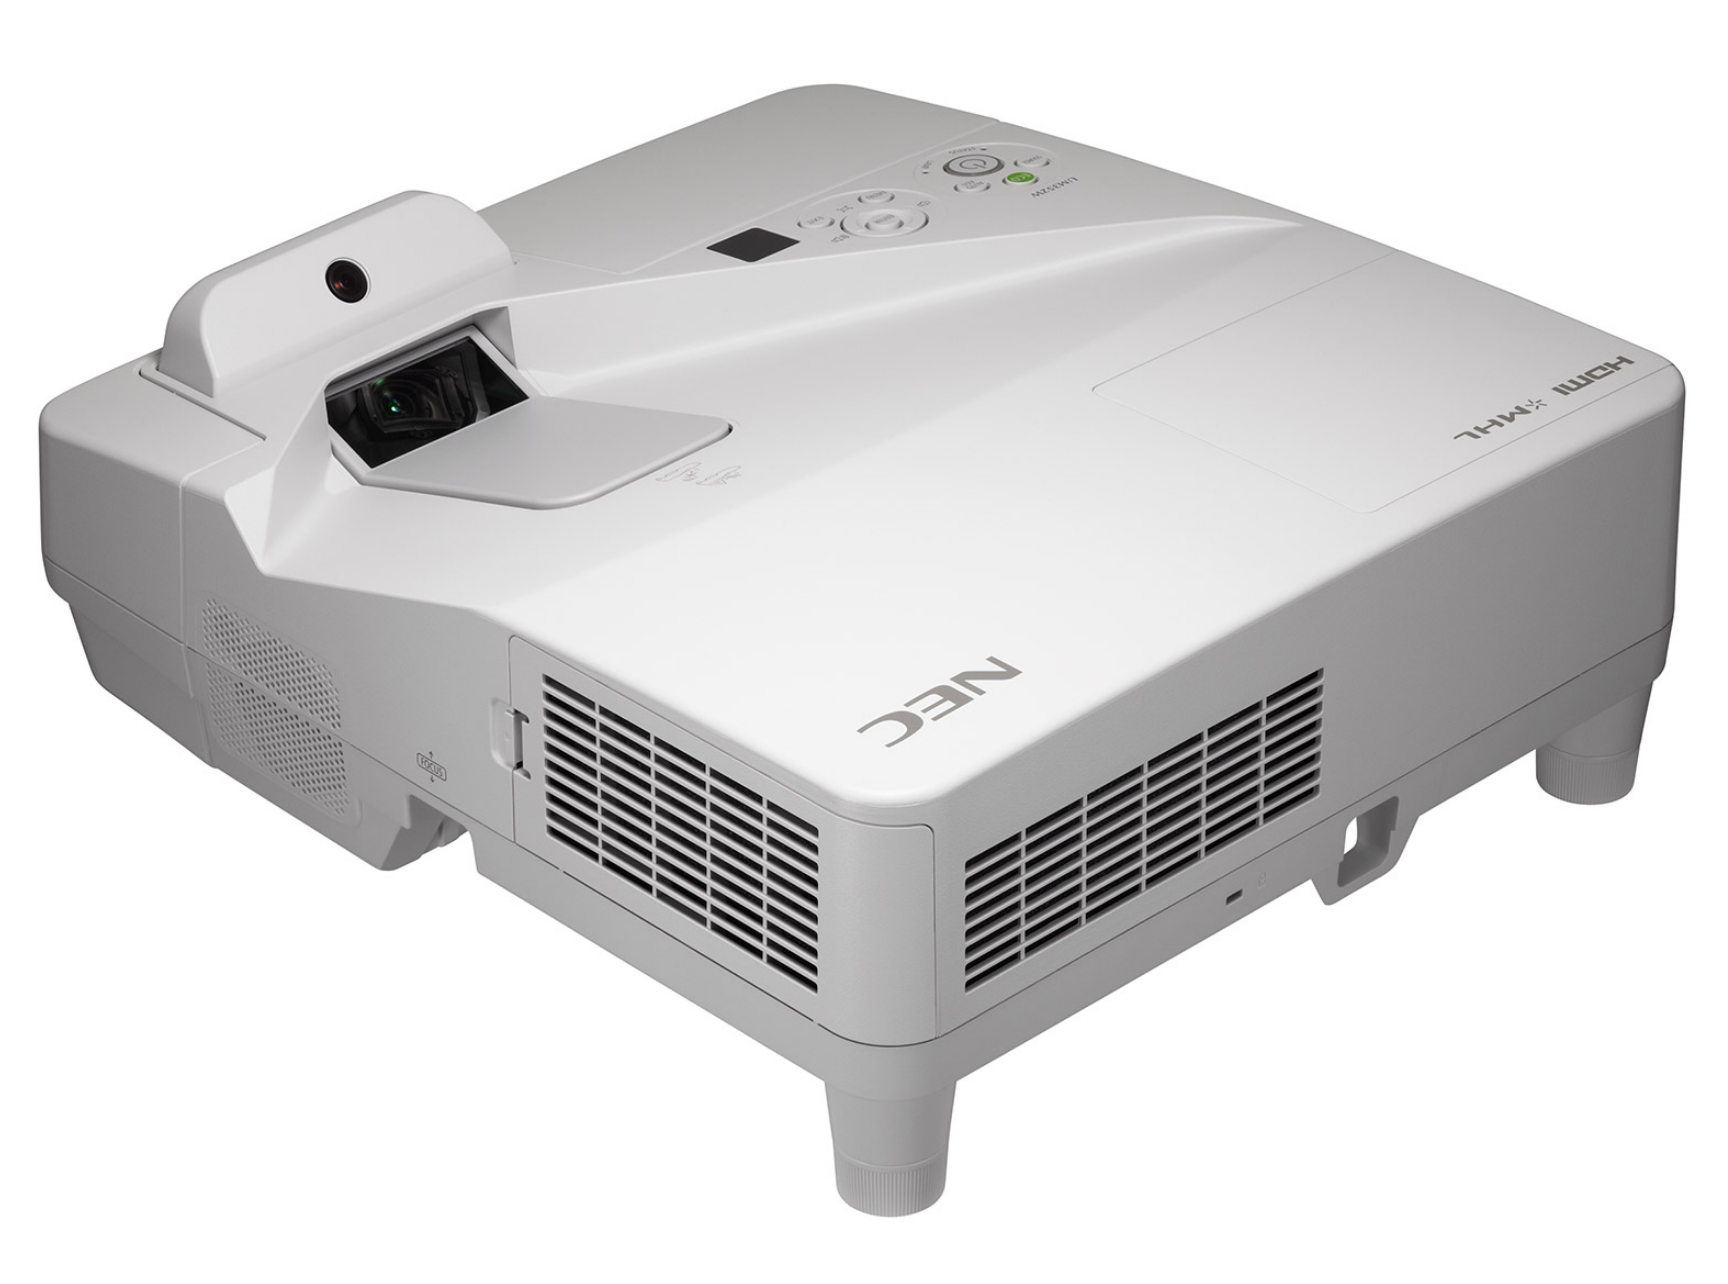 NEC UM352Wi (Multi-Touch) - Projecteur LCD - 3500 ANSI lumens - 1280 x 800 - 16:10 - HD 720p - Objectif ultra court - LAN